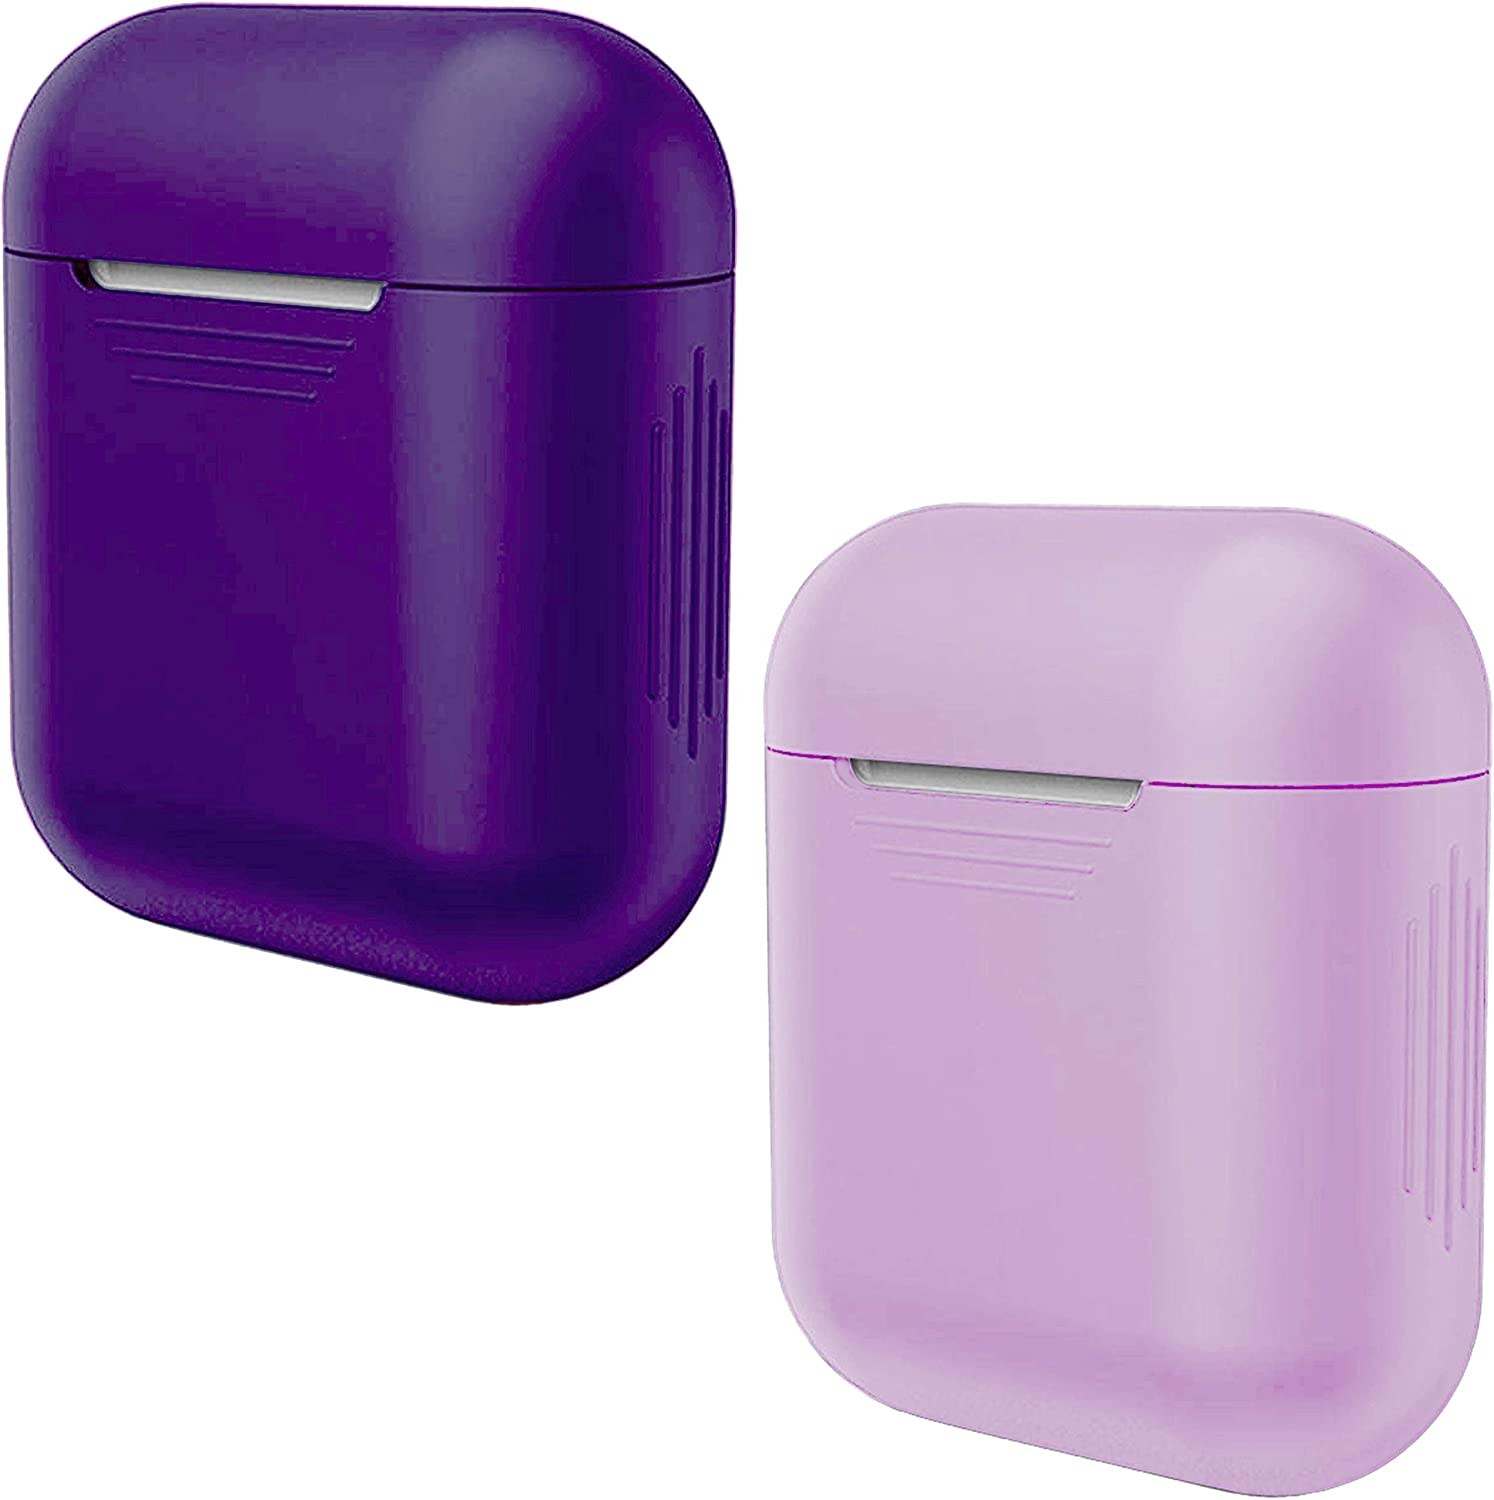 APSKINS Protective Silicone Case Cover 2 Pack – Compatible with Apple AirPods - Add Style and Protect Your Earphones (Purple and Lilac)